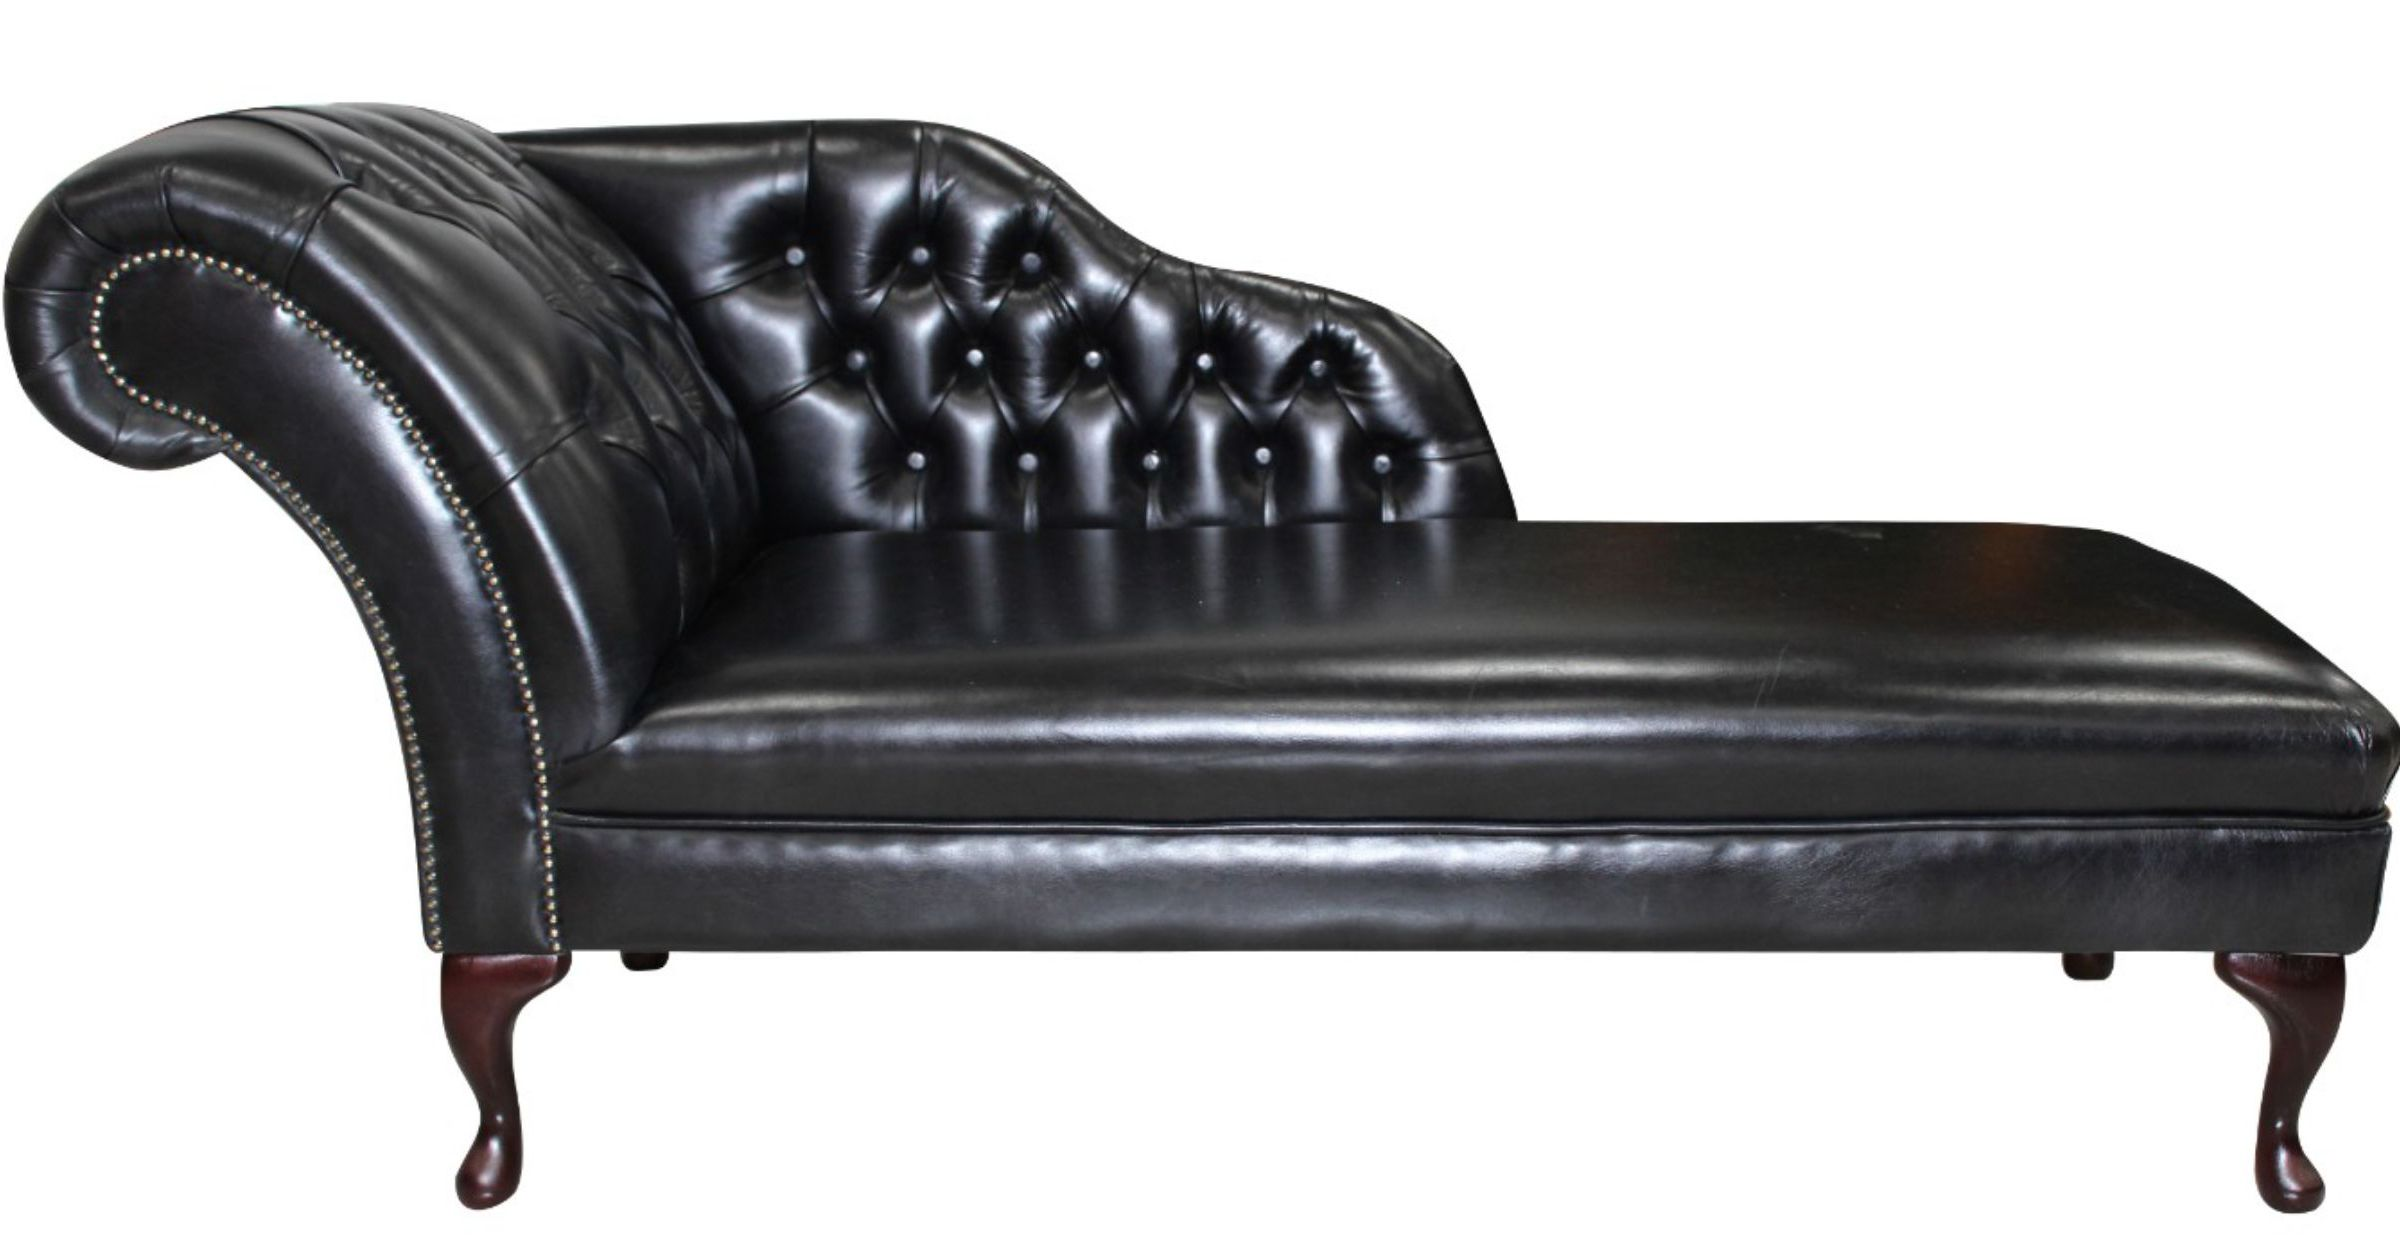 Chesterfield leather chaise lounge day bed designersofas4u for Chaise lounge black friday sale